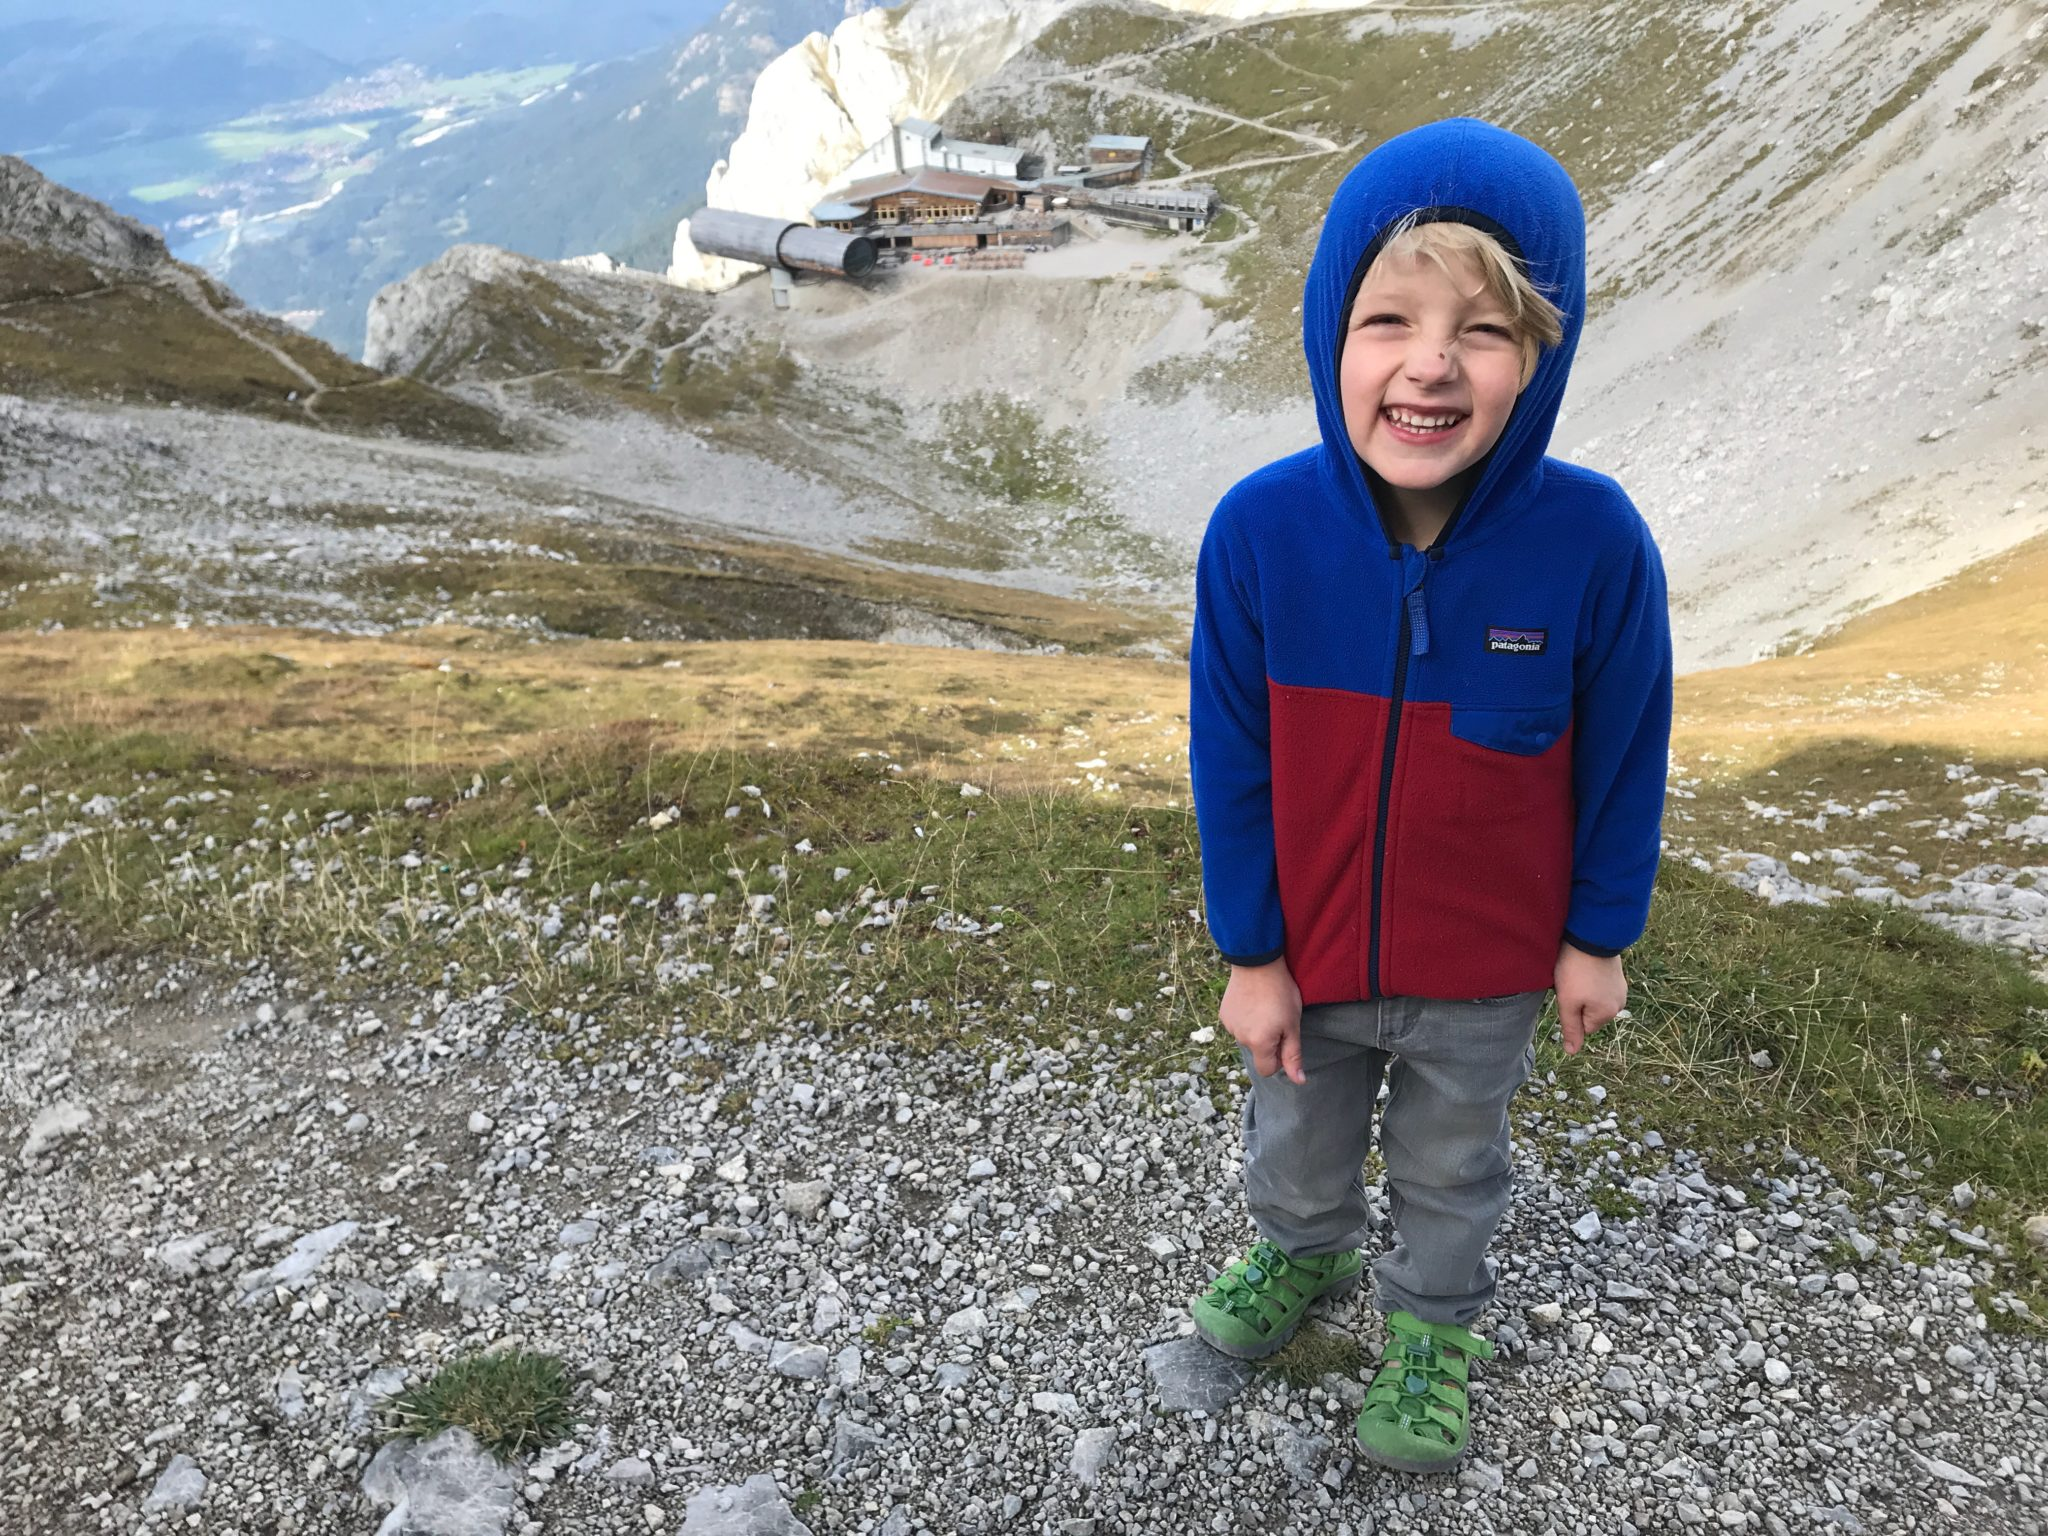 Karwendel hike with kids